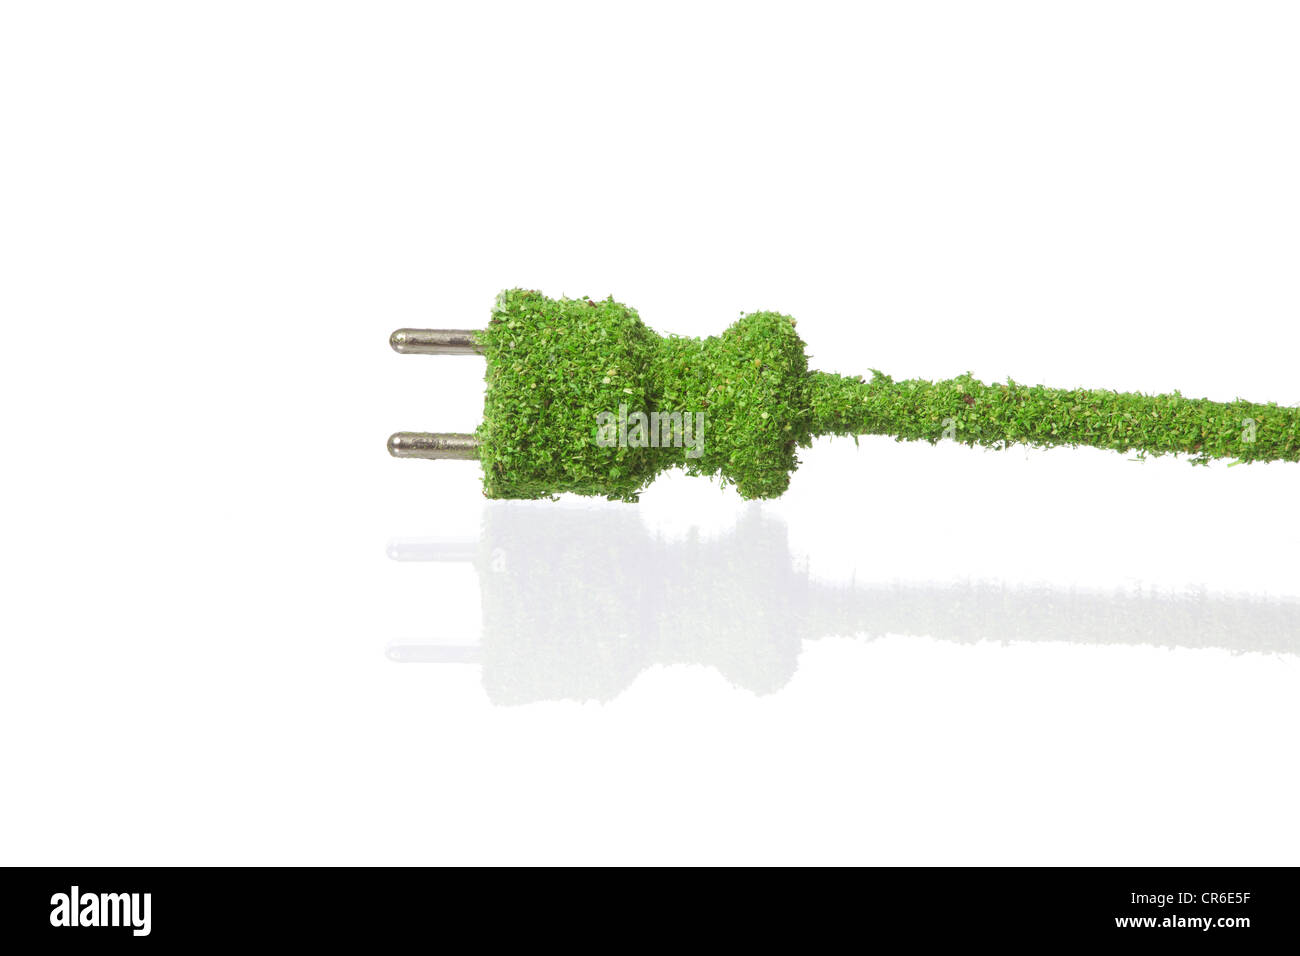 Electric plug covered with grass on white background - Stock Image